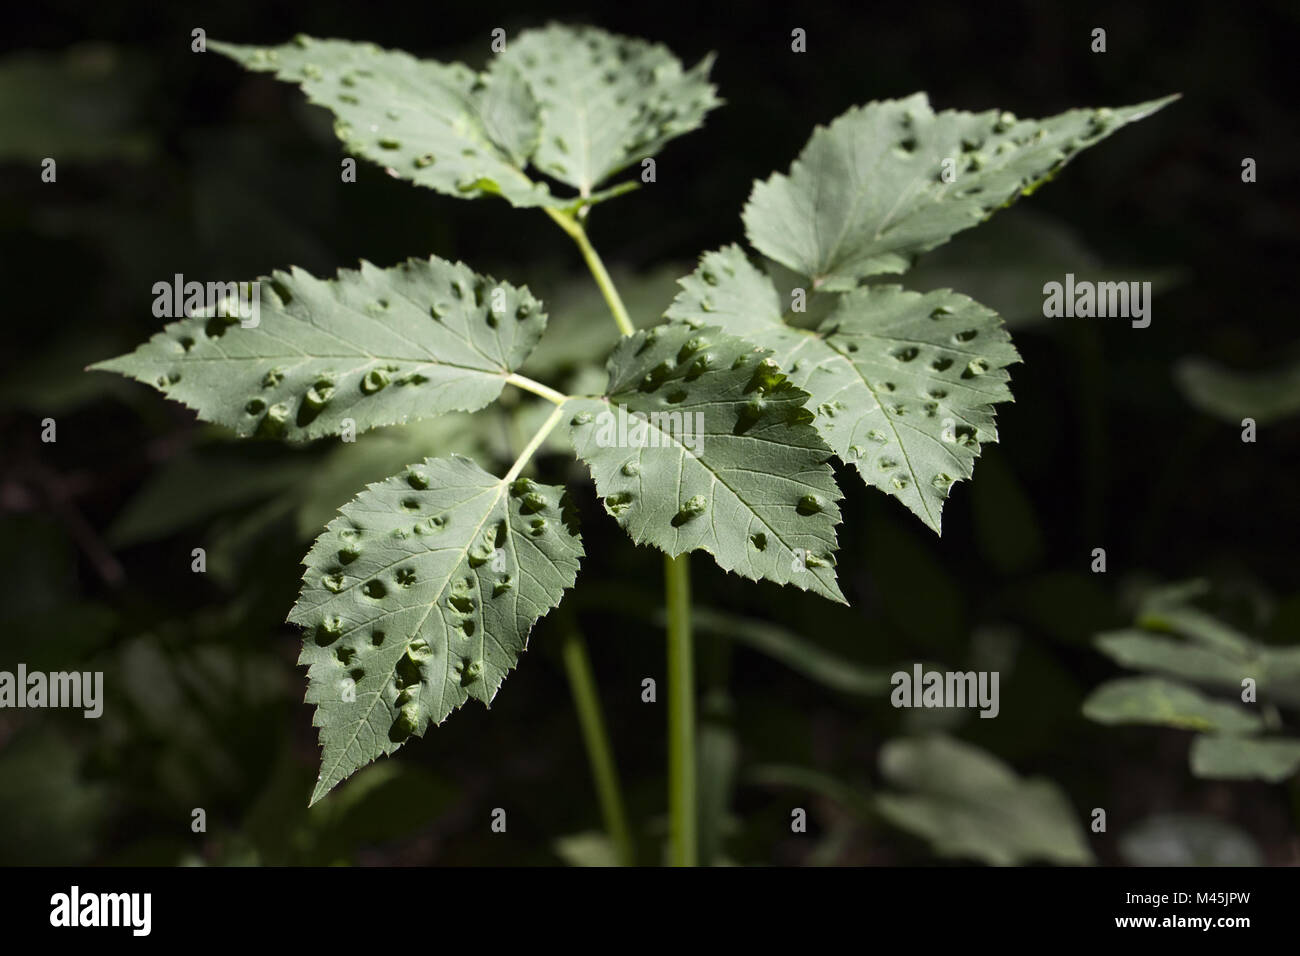 Plant affected by disease - Stock Image